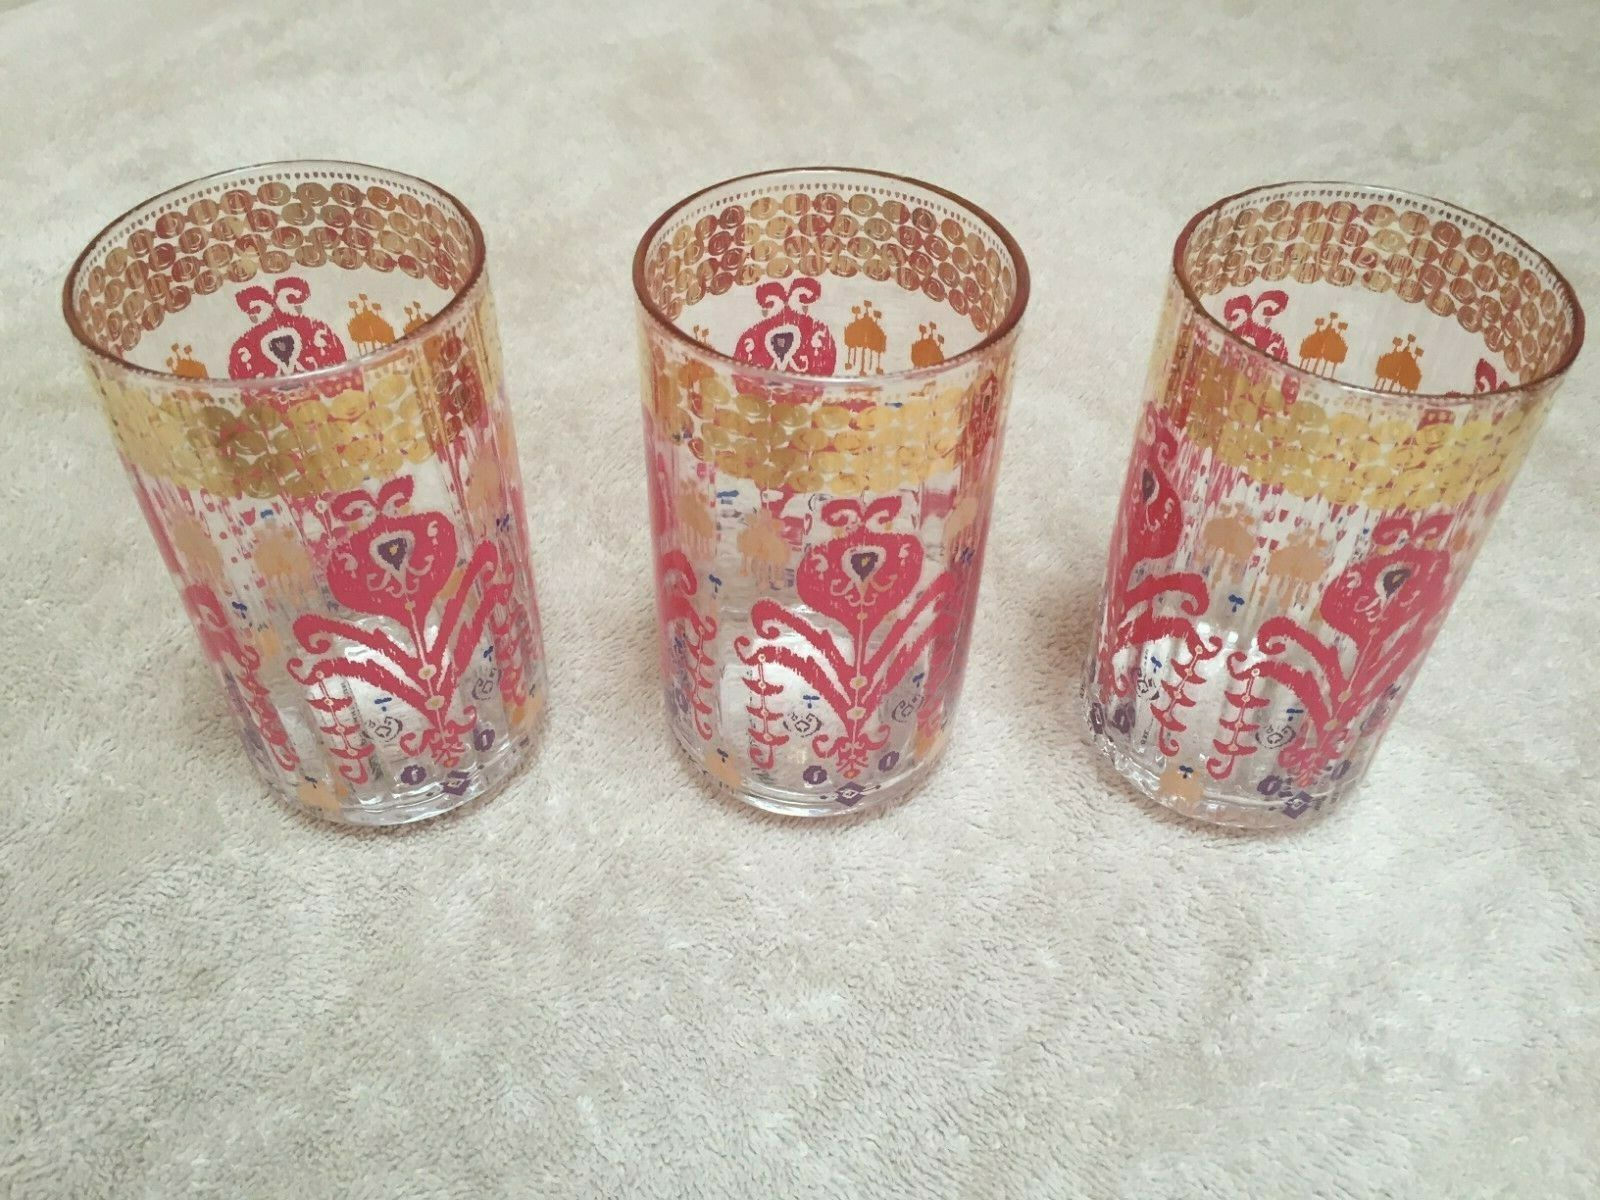 ANTHROPOLOGIE Set of 6 Pink/White/Gold Painted Juice/Soda Glasses